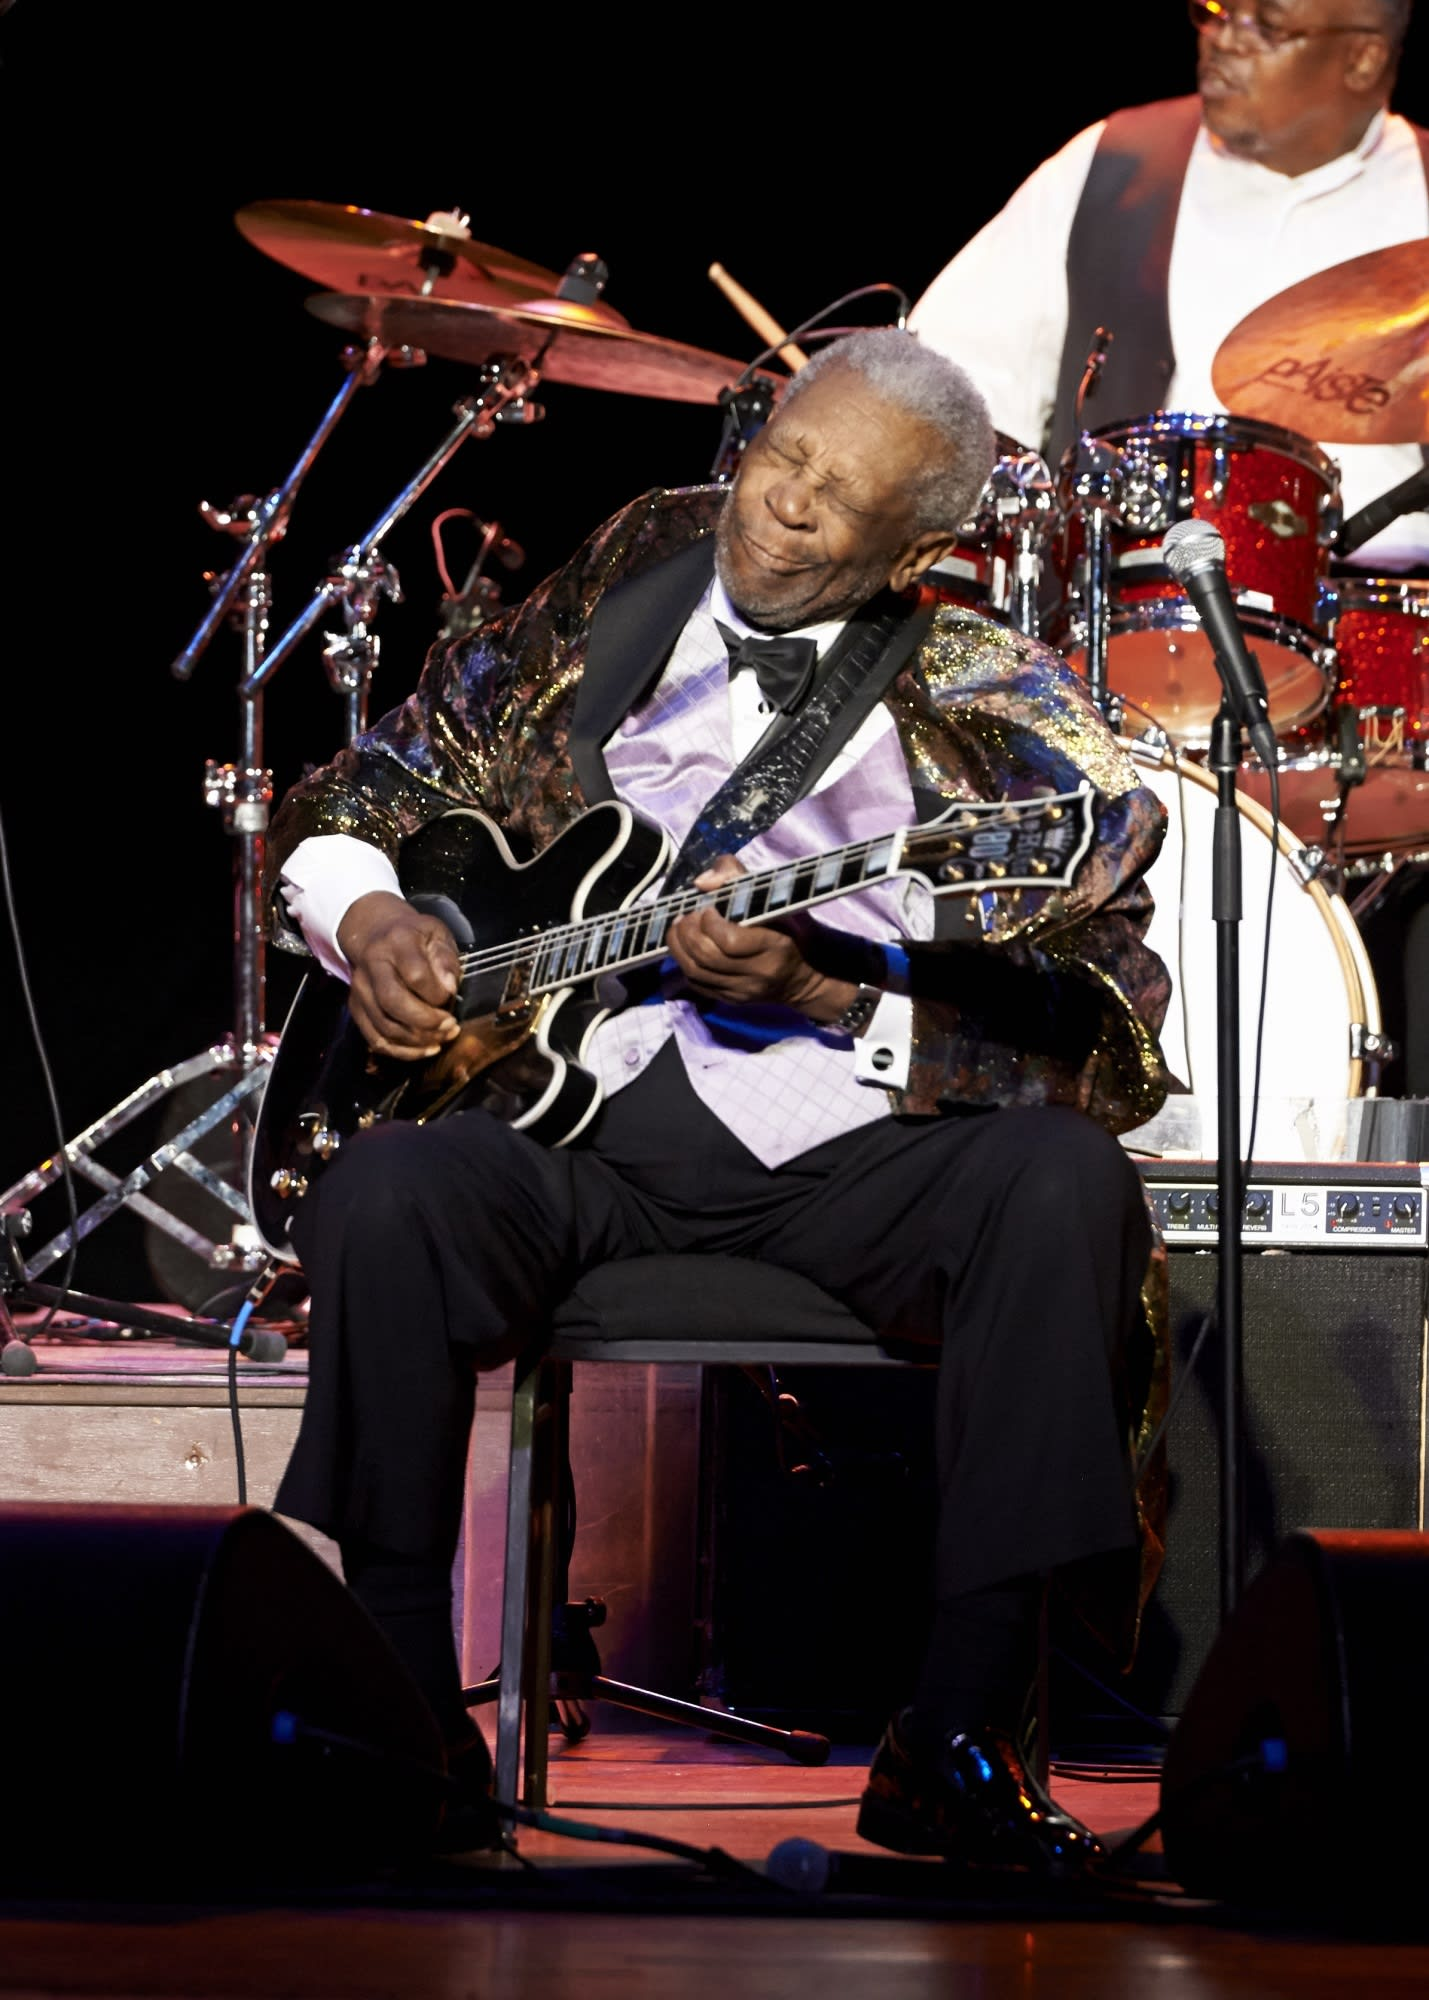 B.B. King at Massey Hal